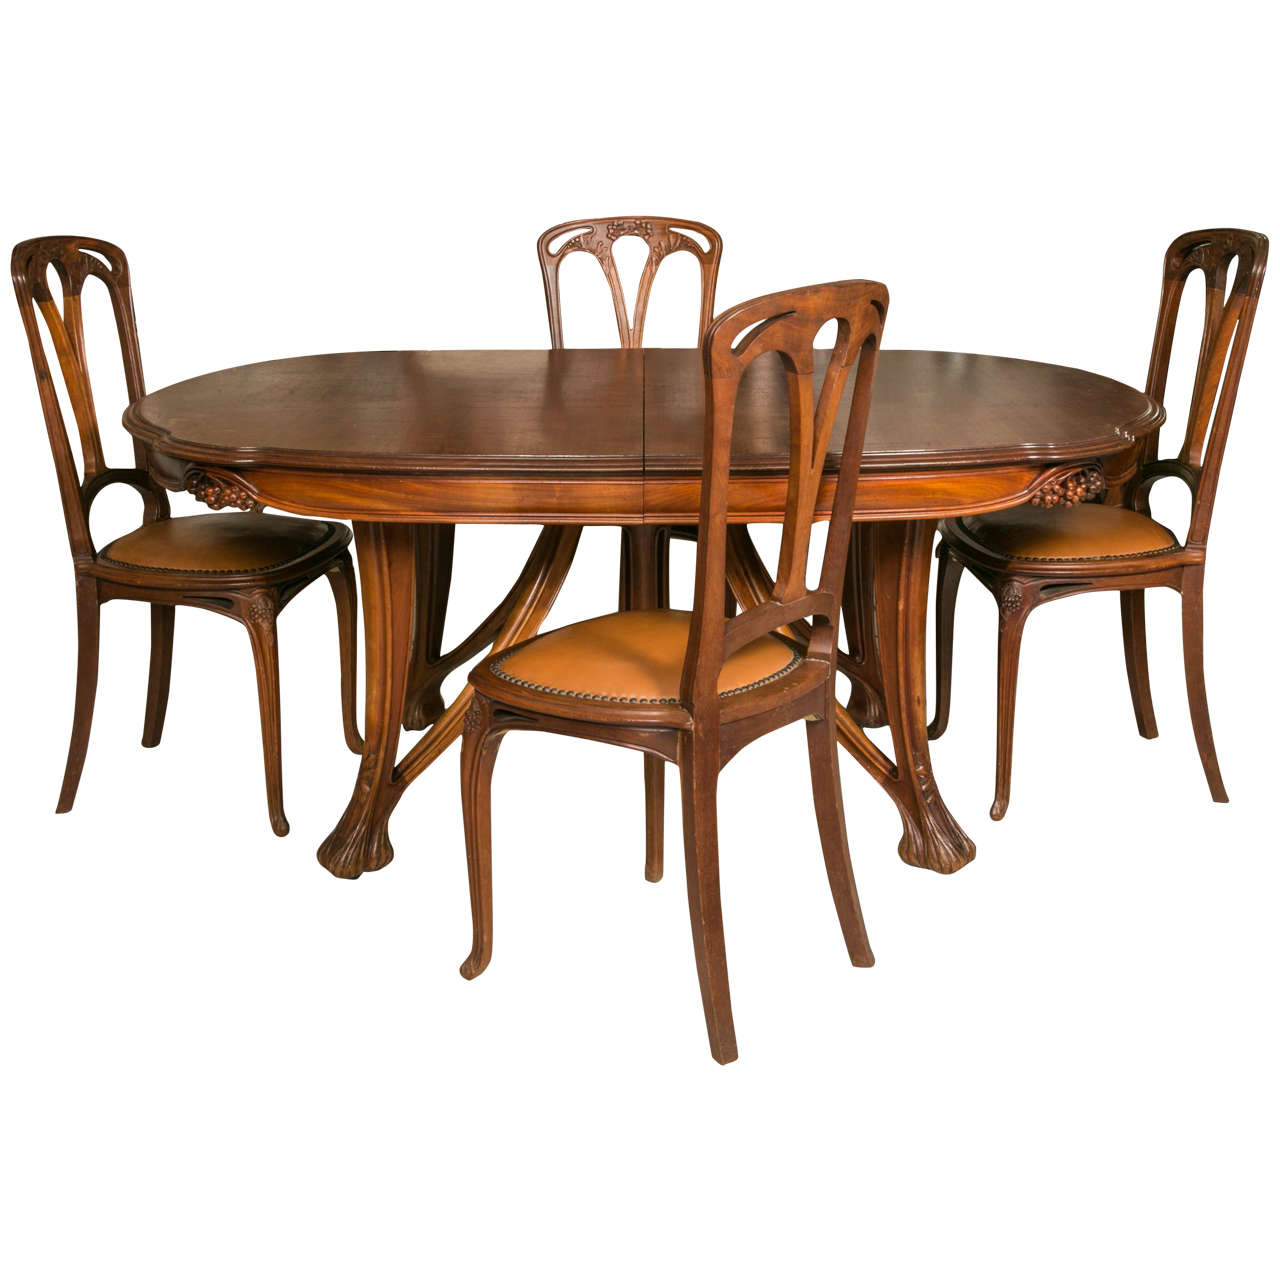 Art nouveau style furniture - Art Nouveau Mahogany Table And 12 Chairs Decorated With Berries By Paul A Dumas